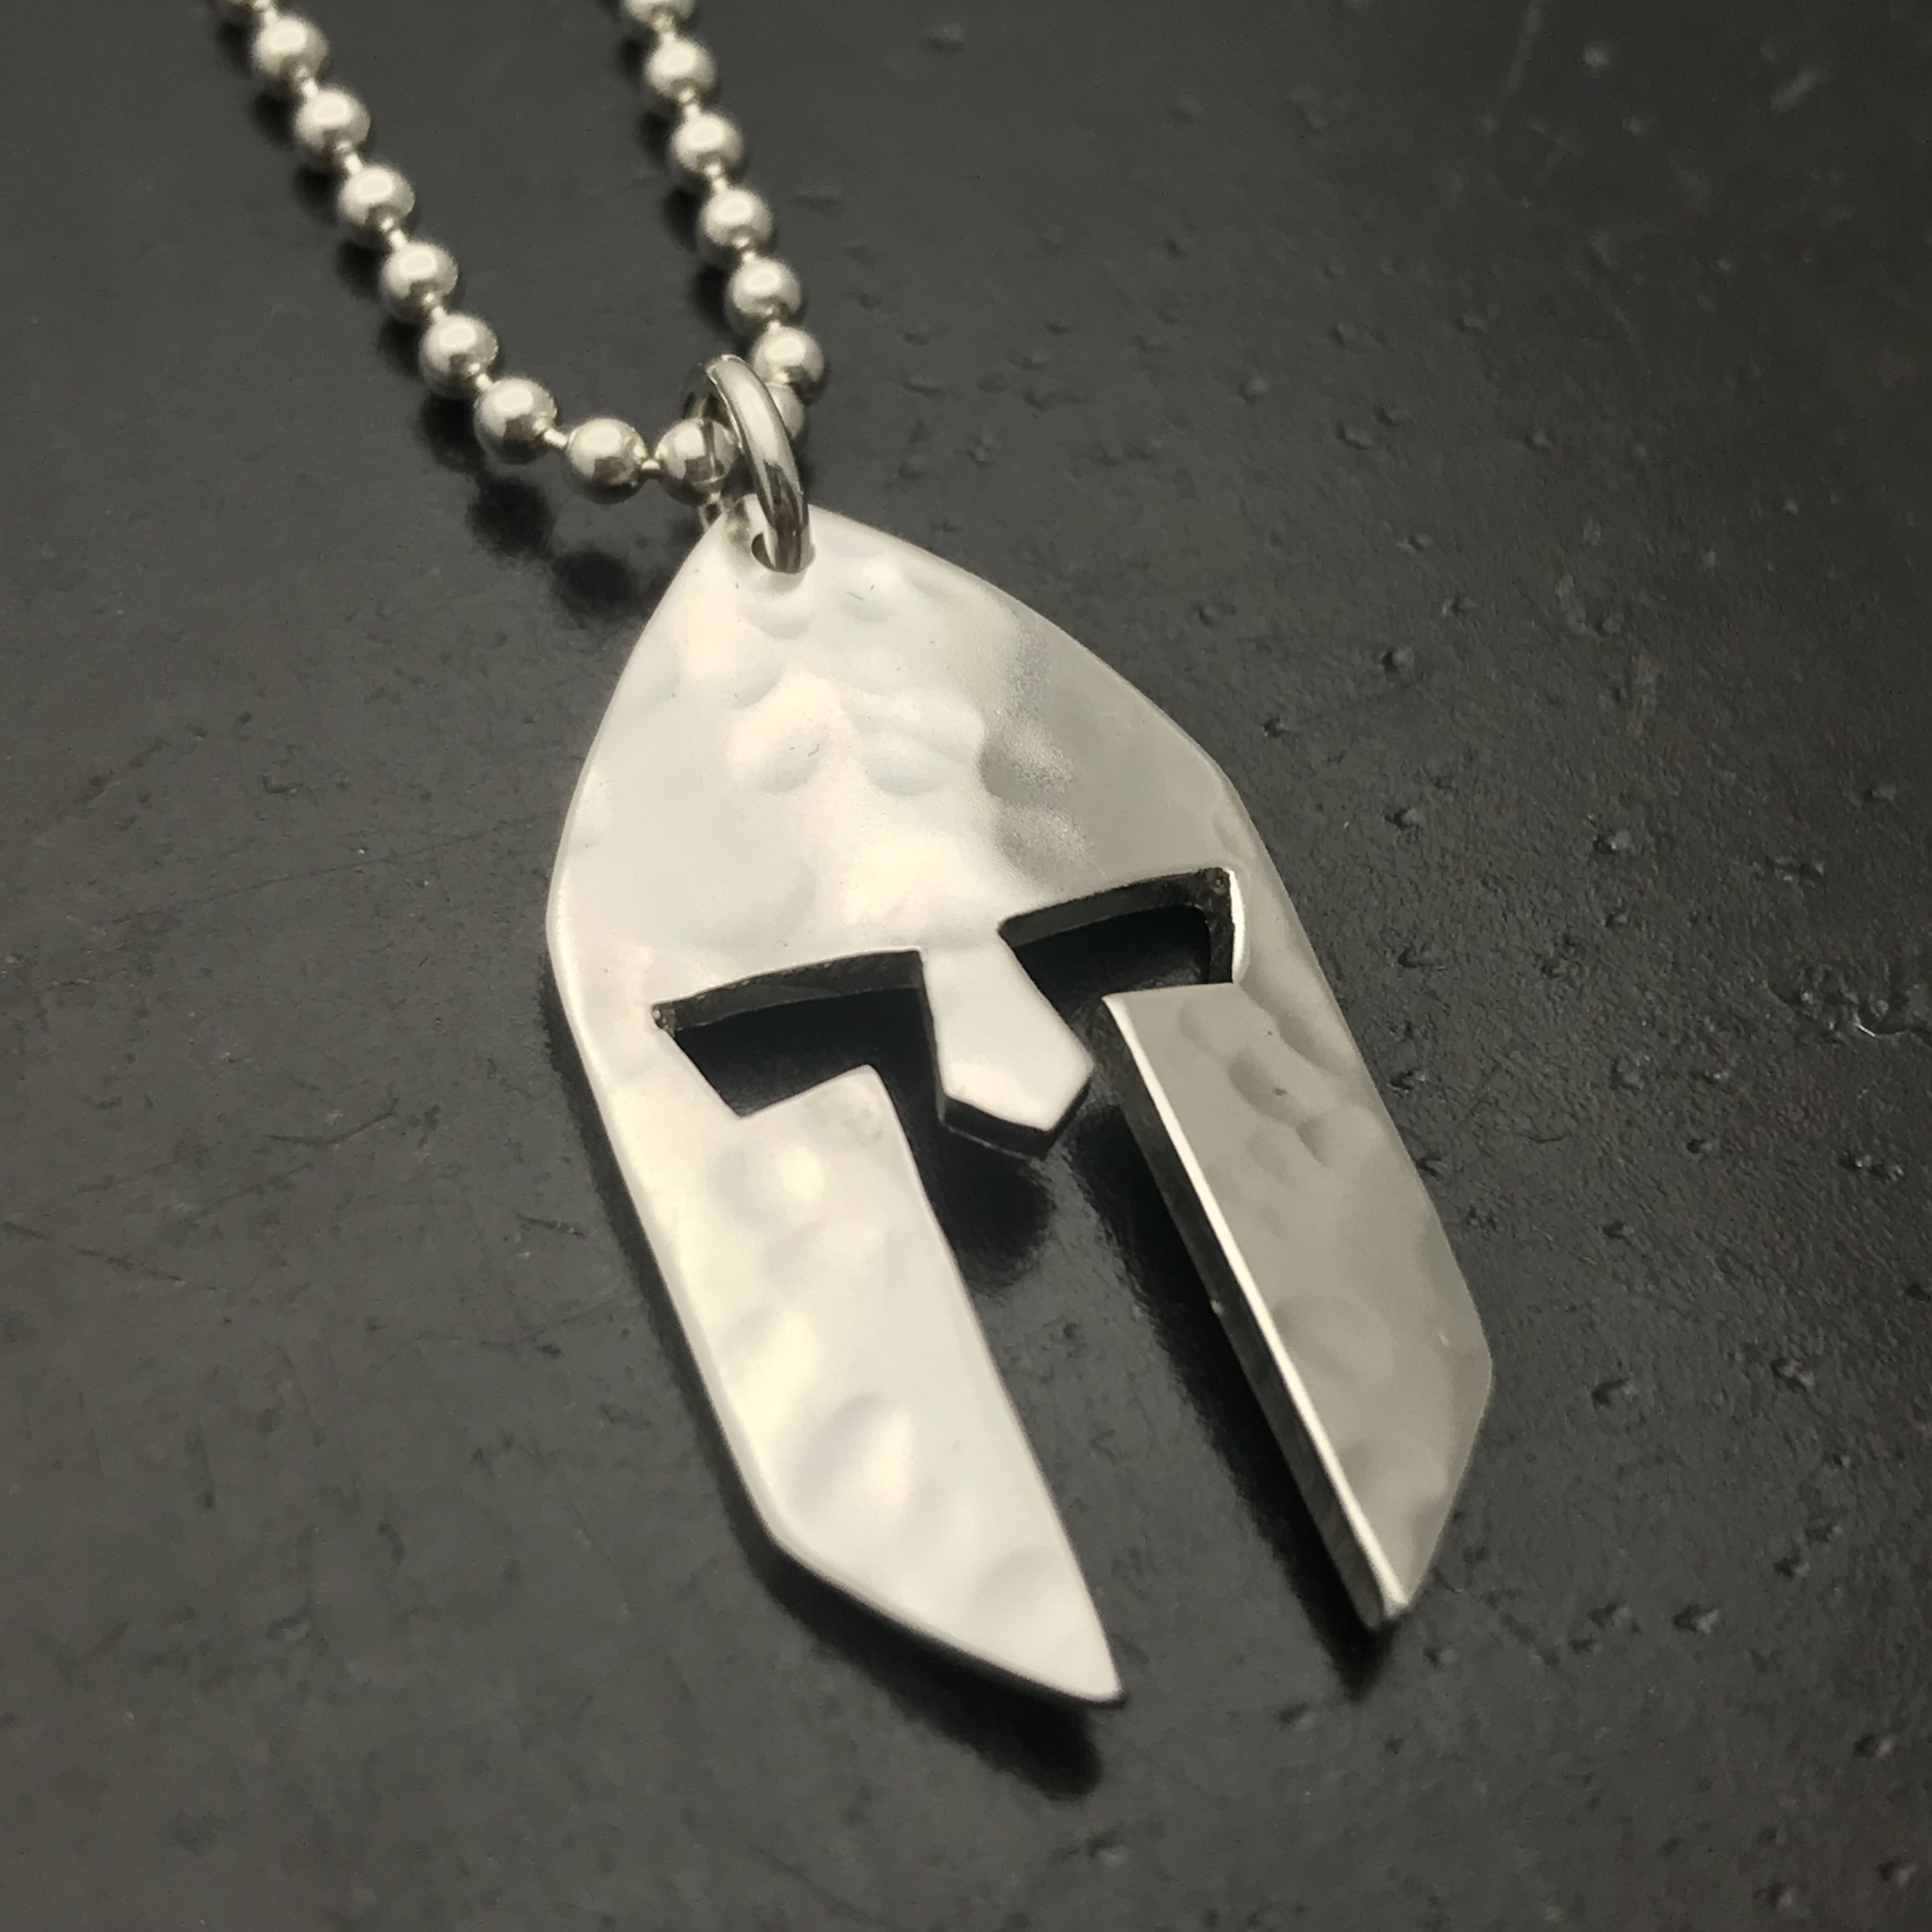 custom vikings mask helmet hammered pendant sligth curved commission piece for special order